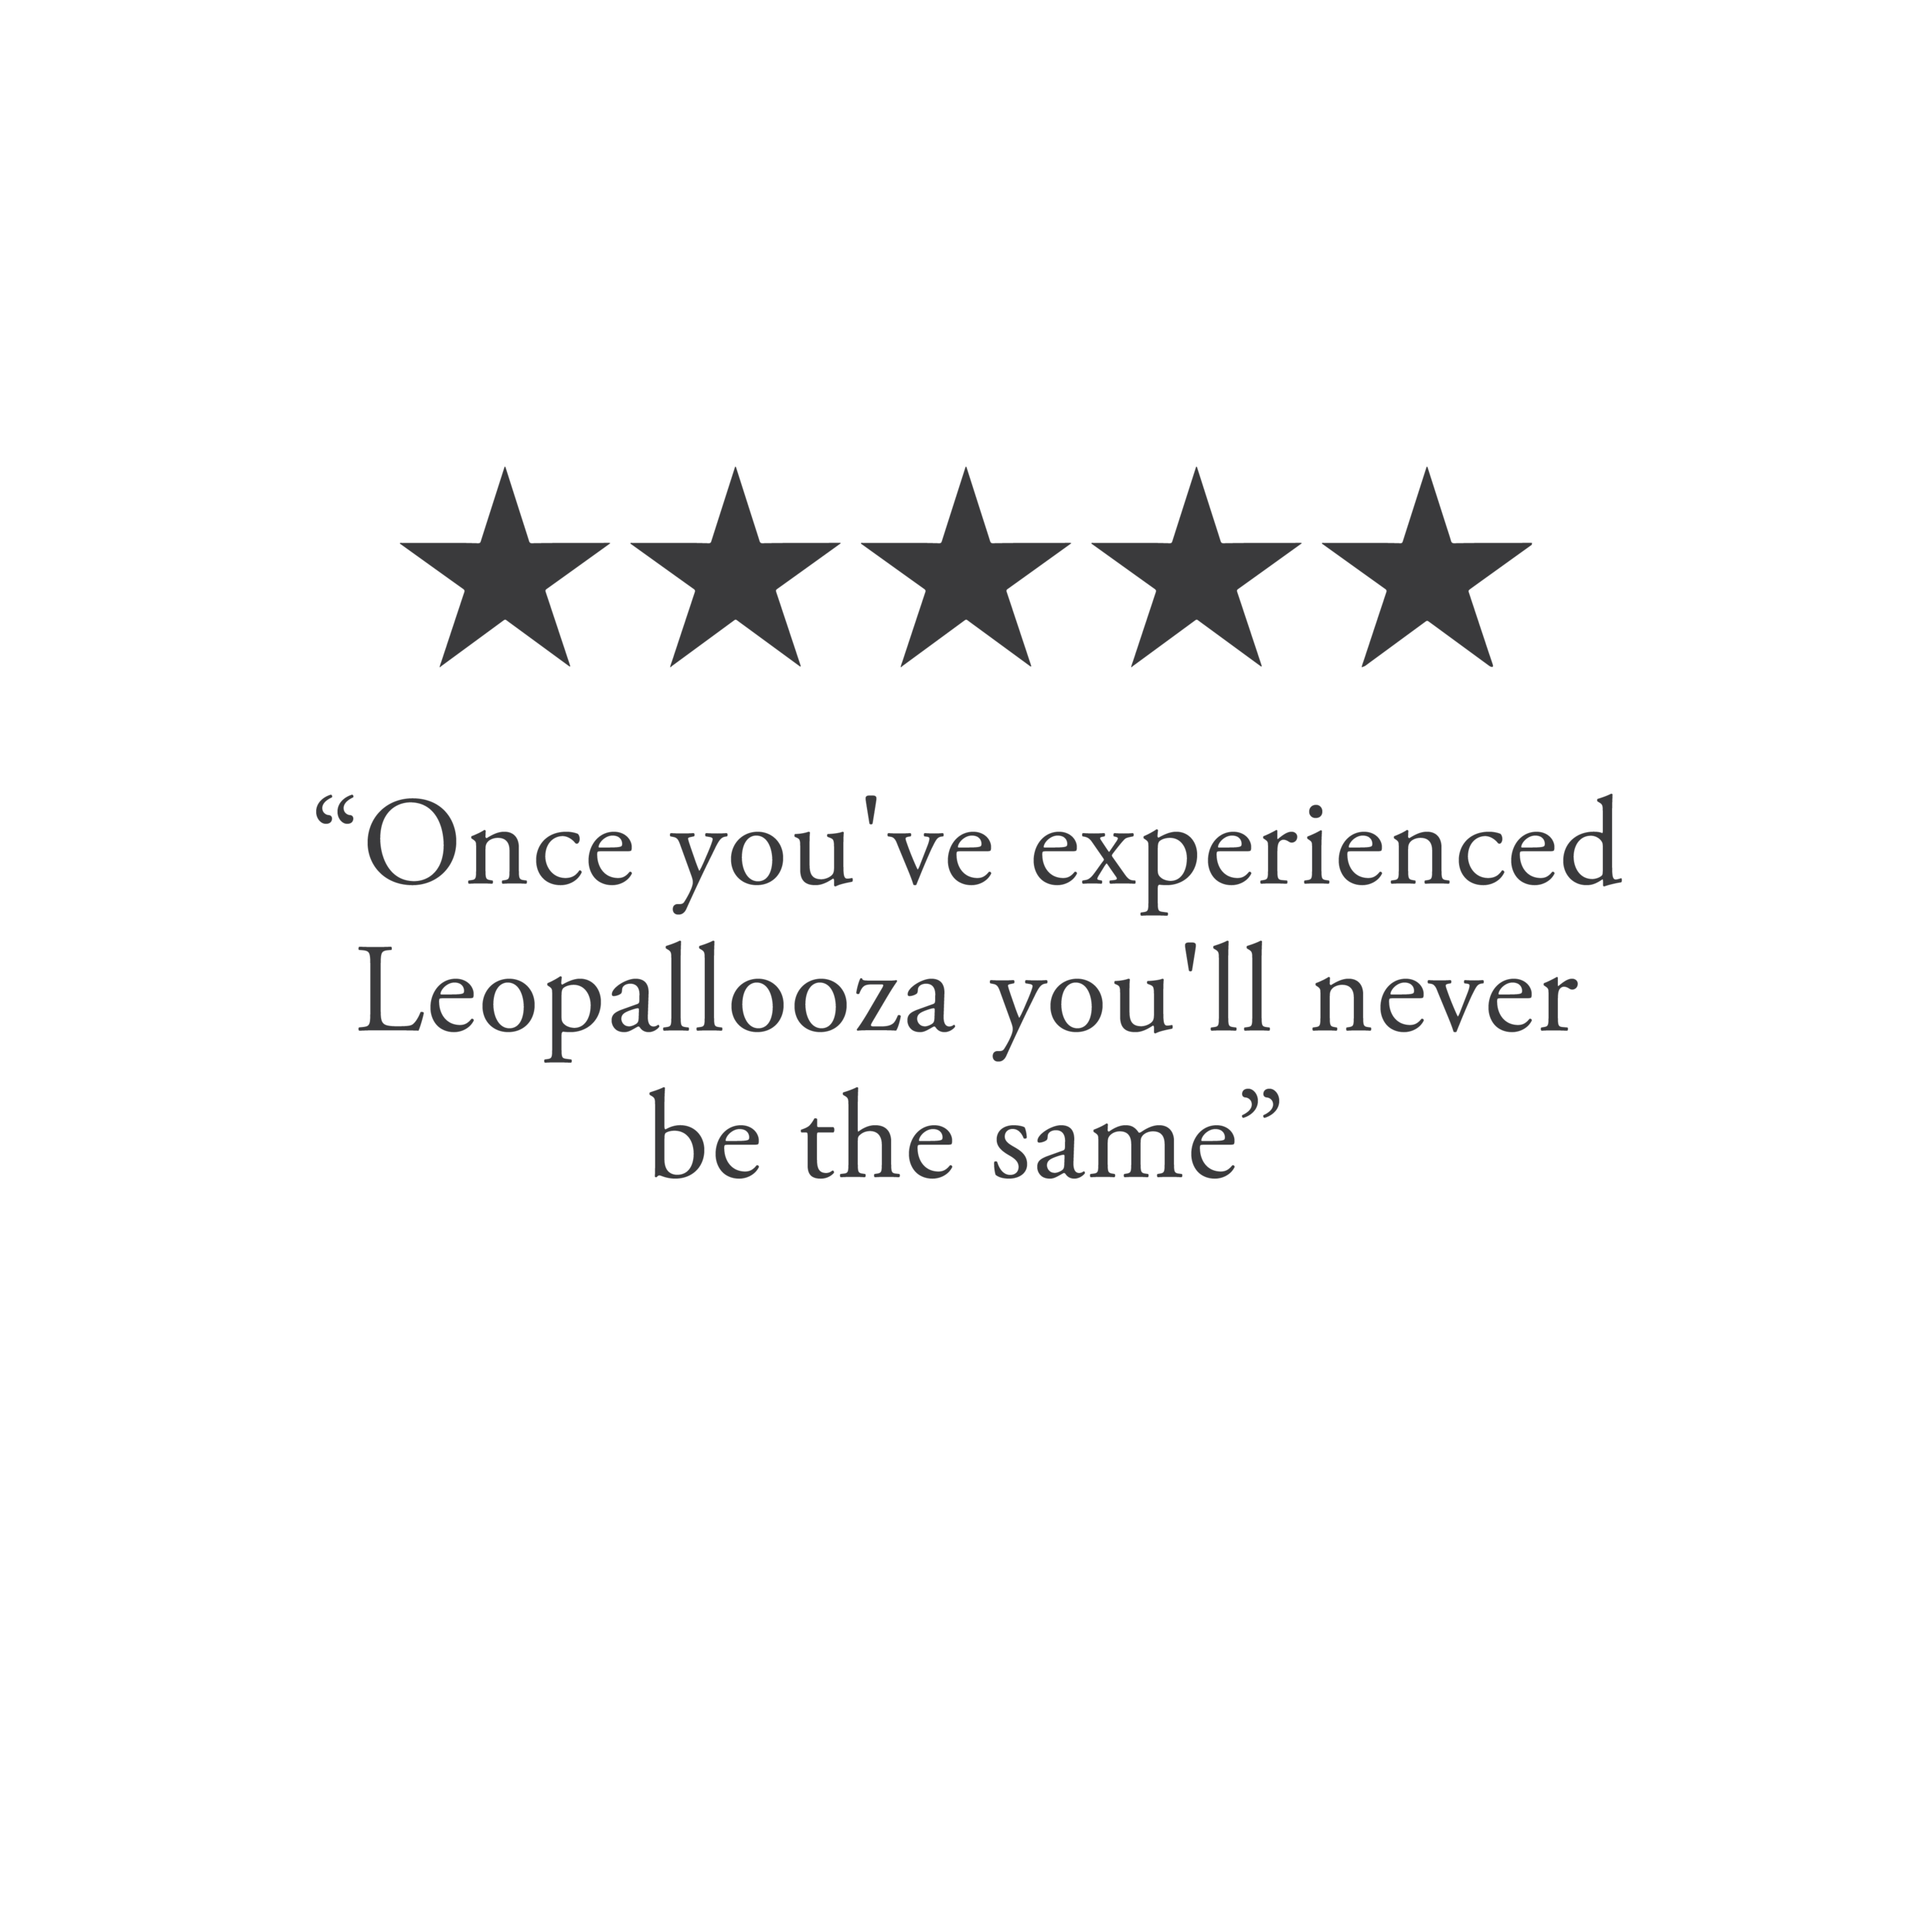 Cornwall Live-01.png